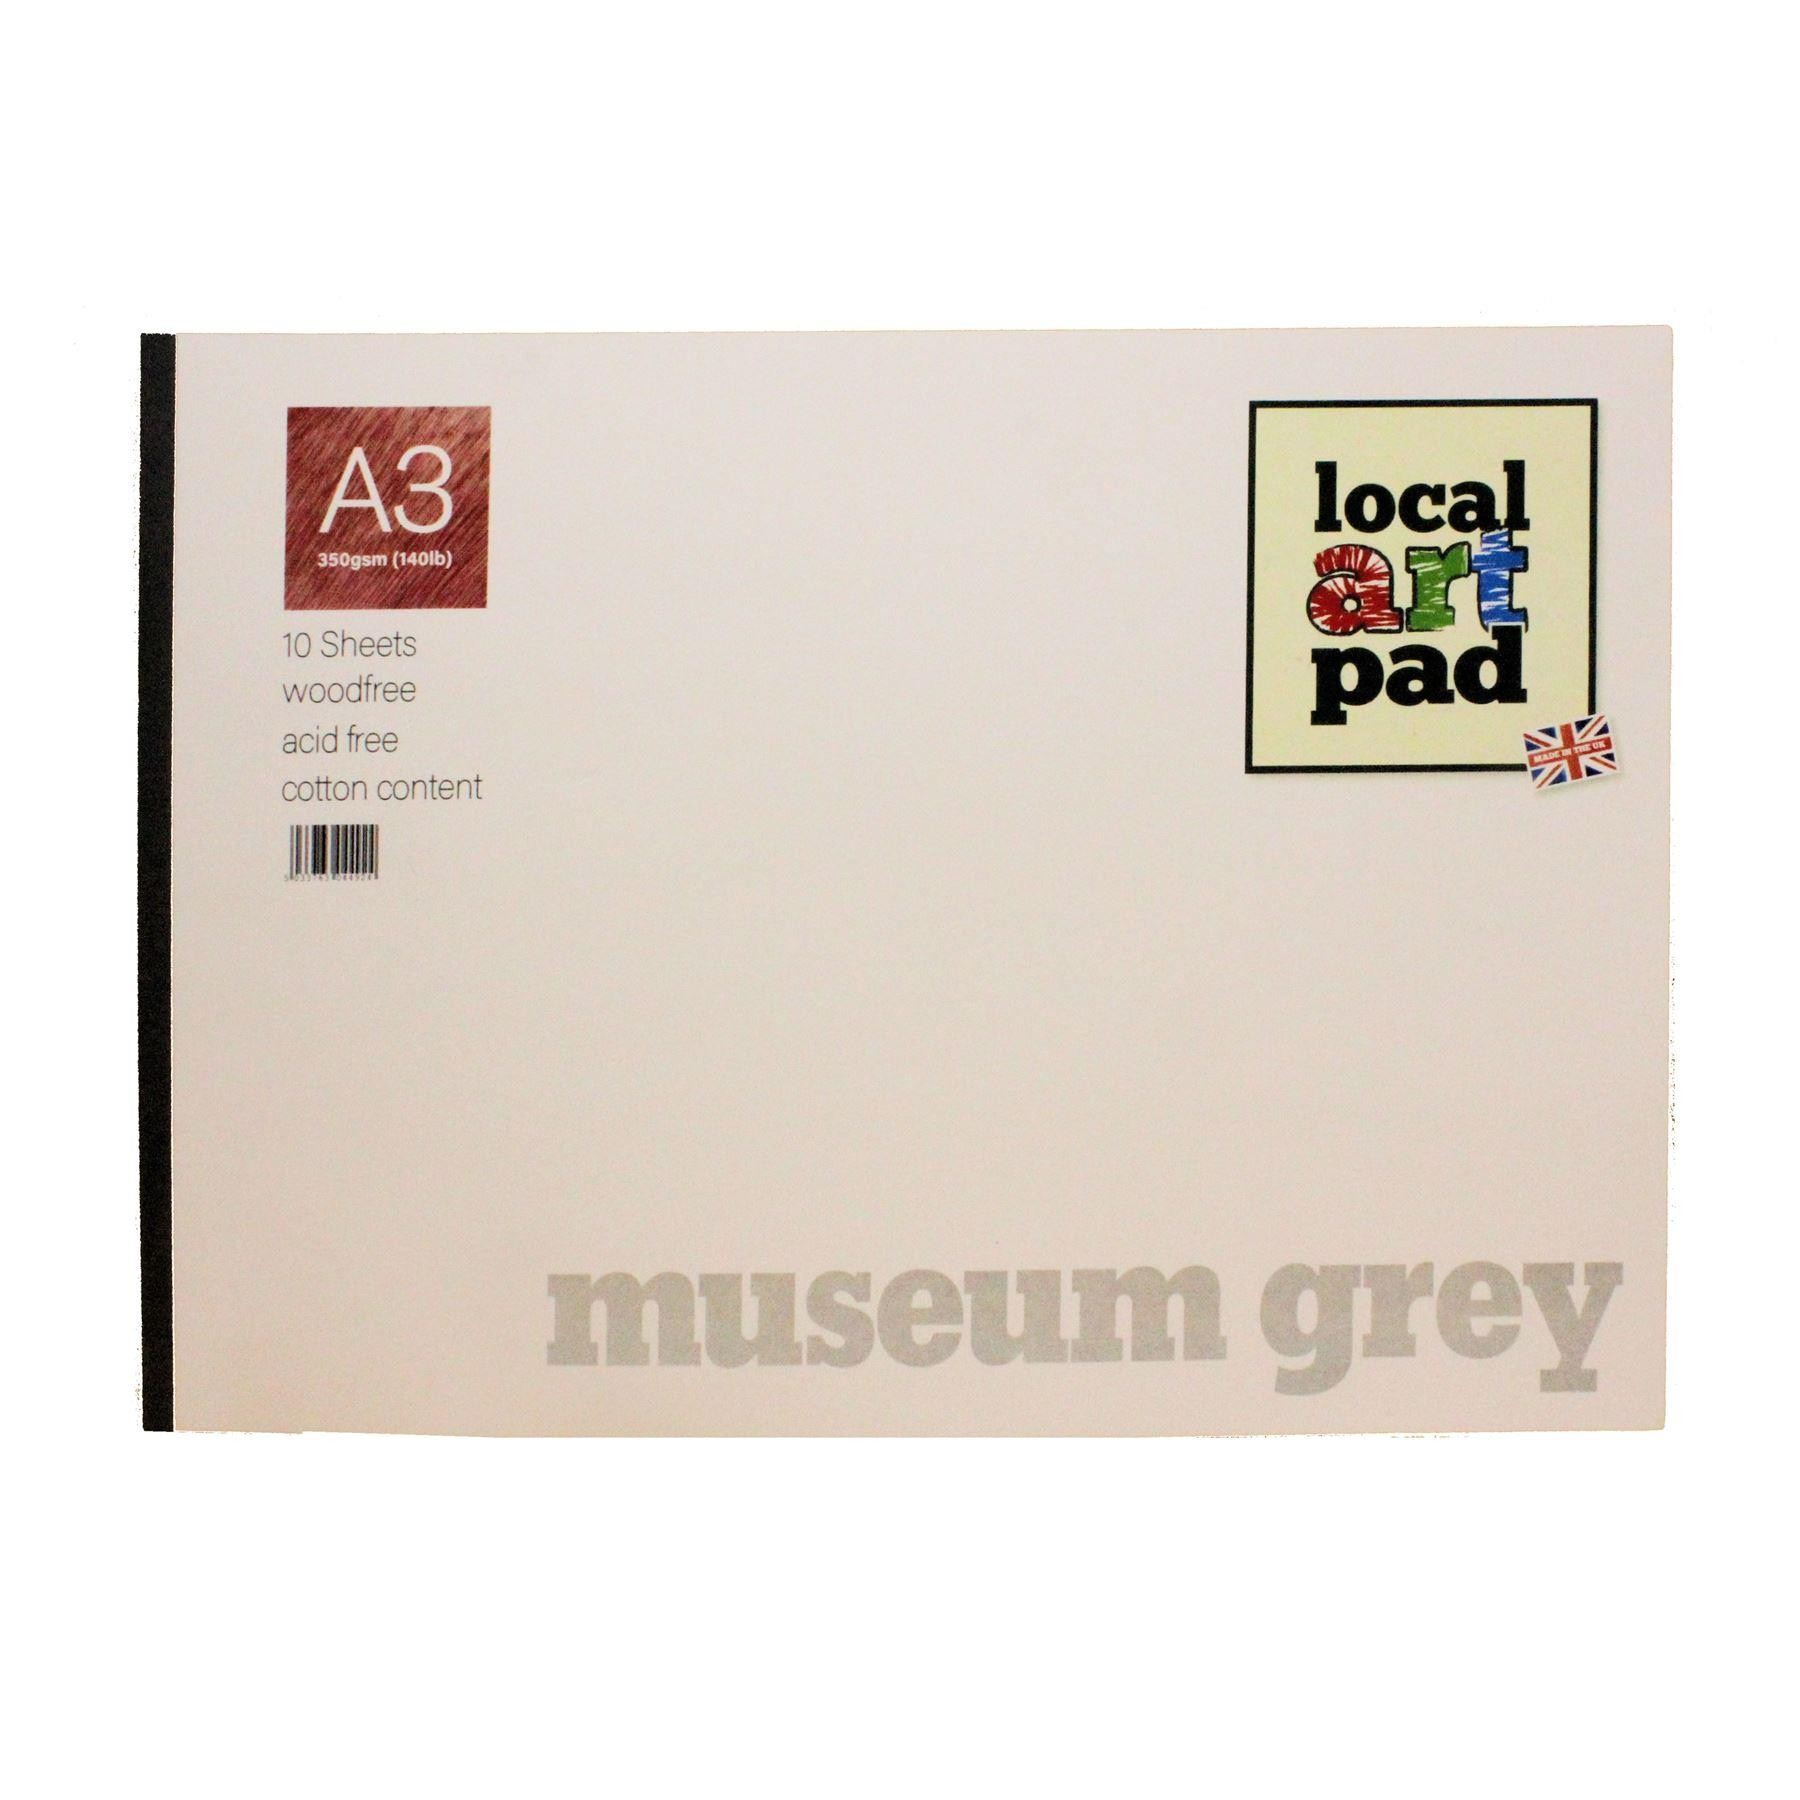 Local art pad A3 Museum grey 350 GSM paper pad